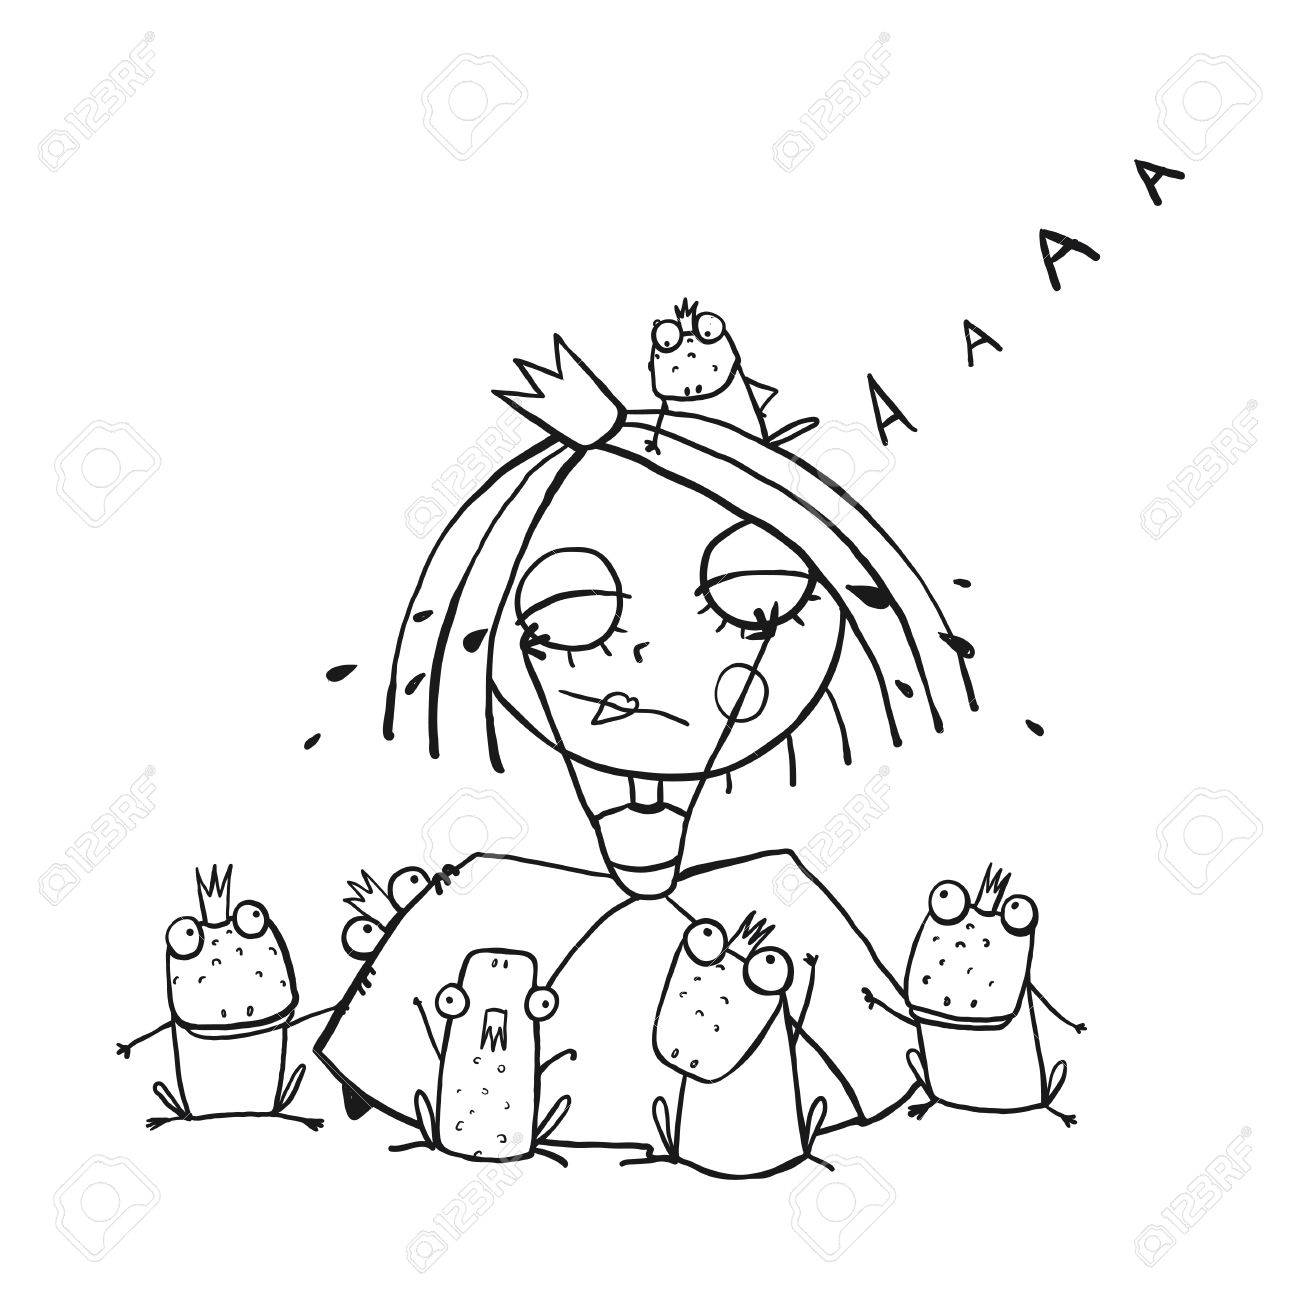 1299x1300 Princess Crying And Many Prince Frogs Coloring Page Outline